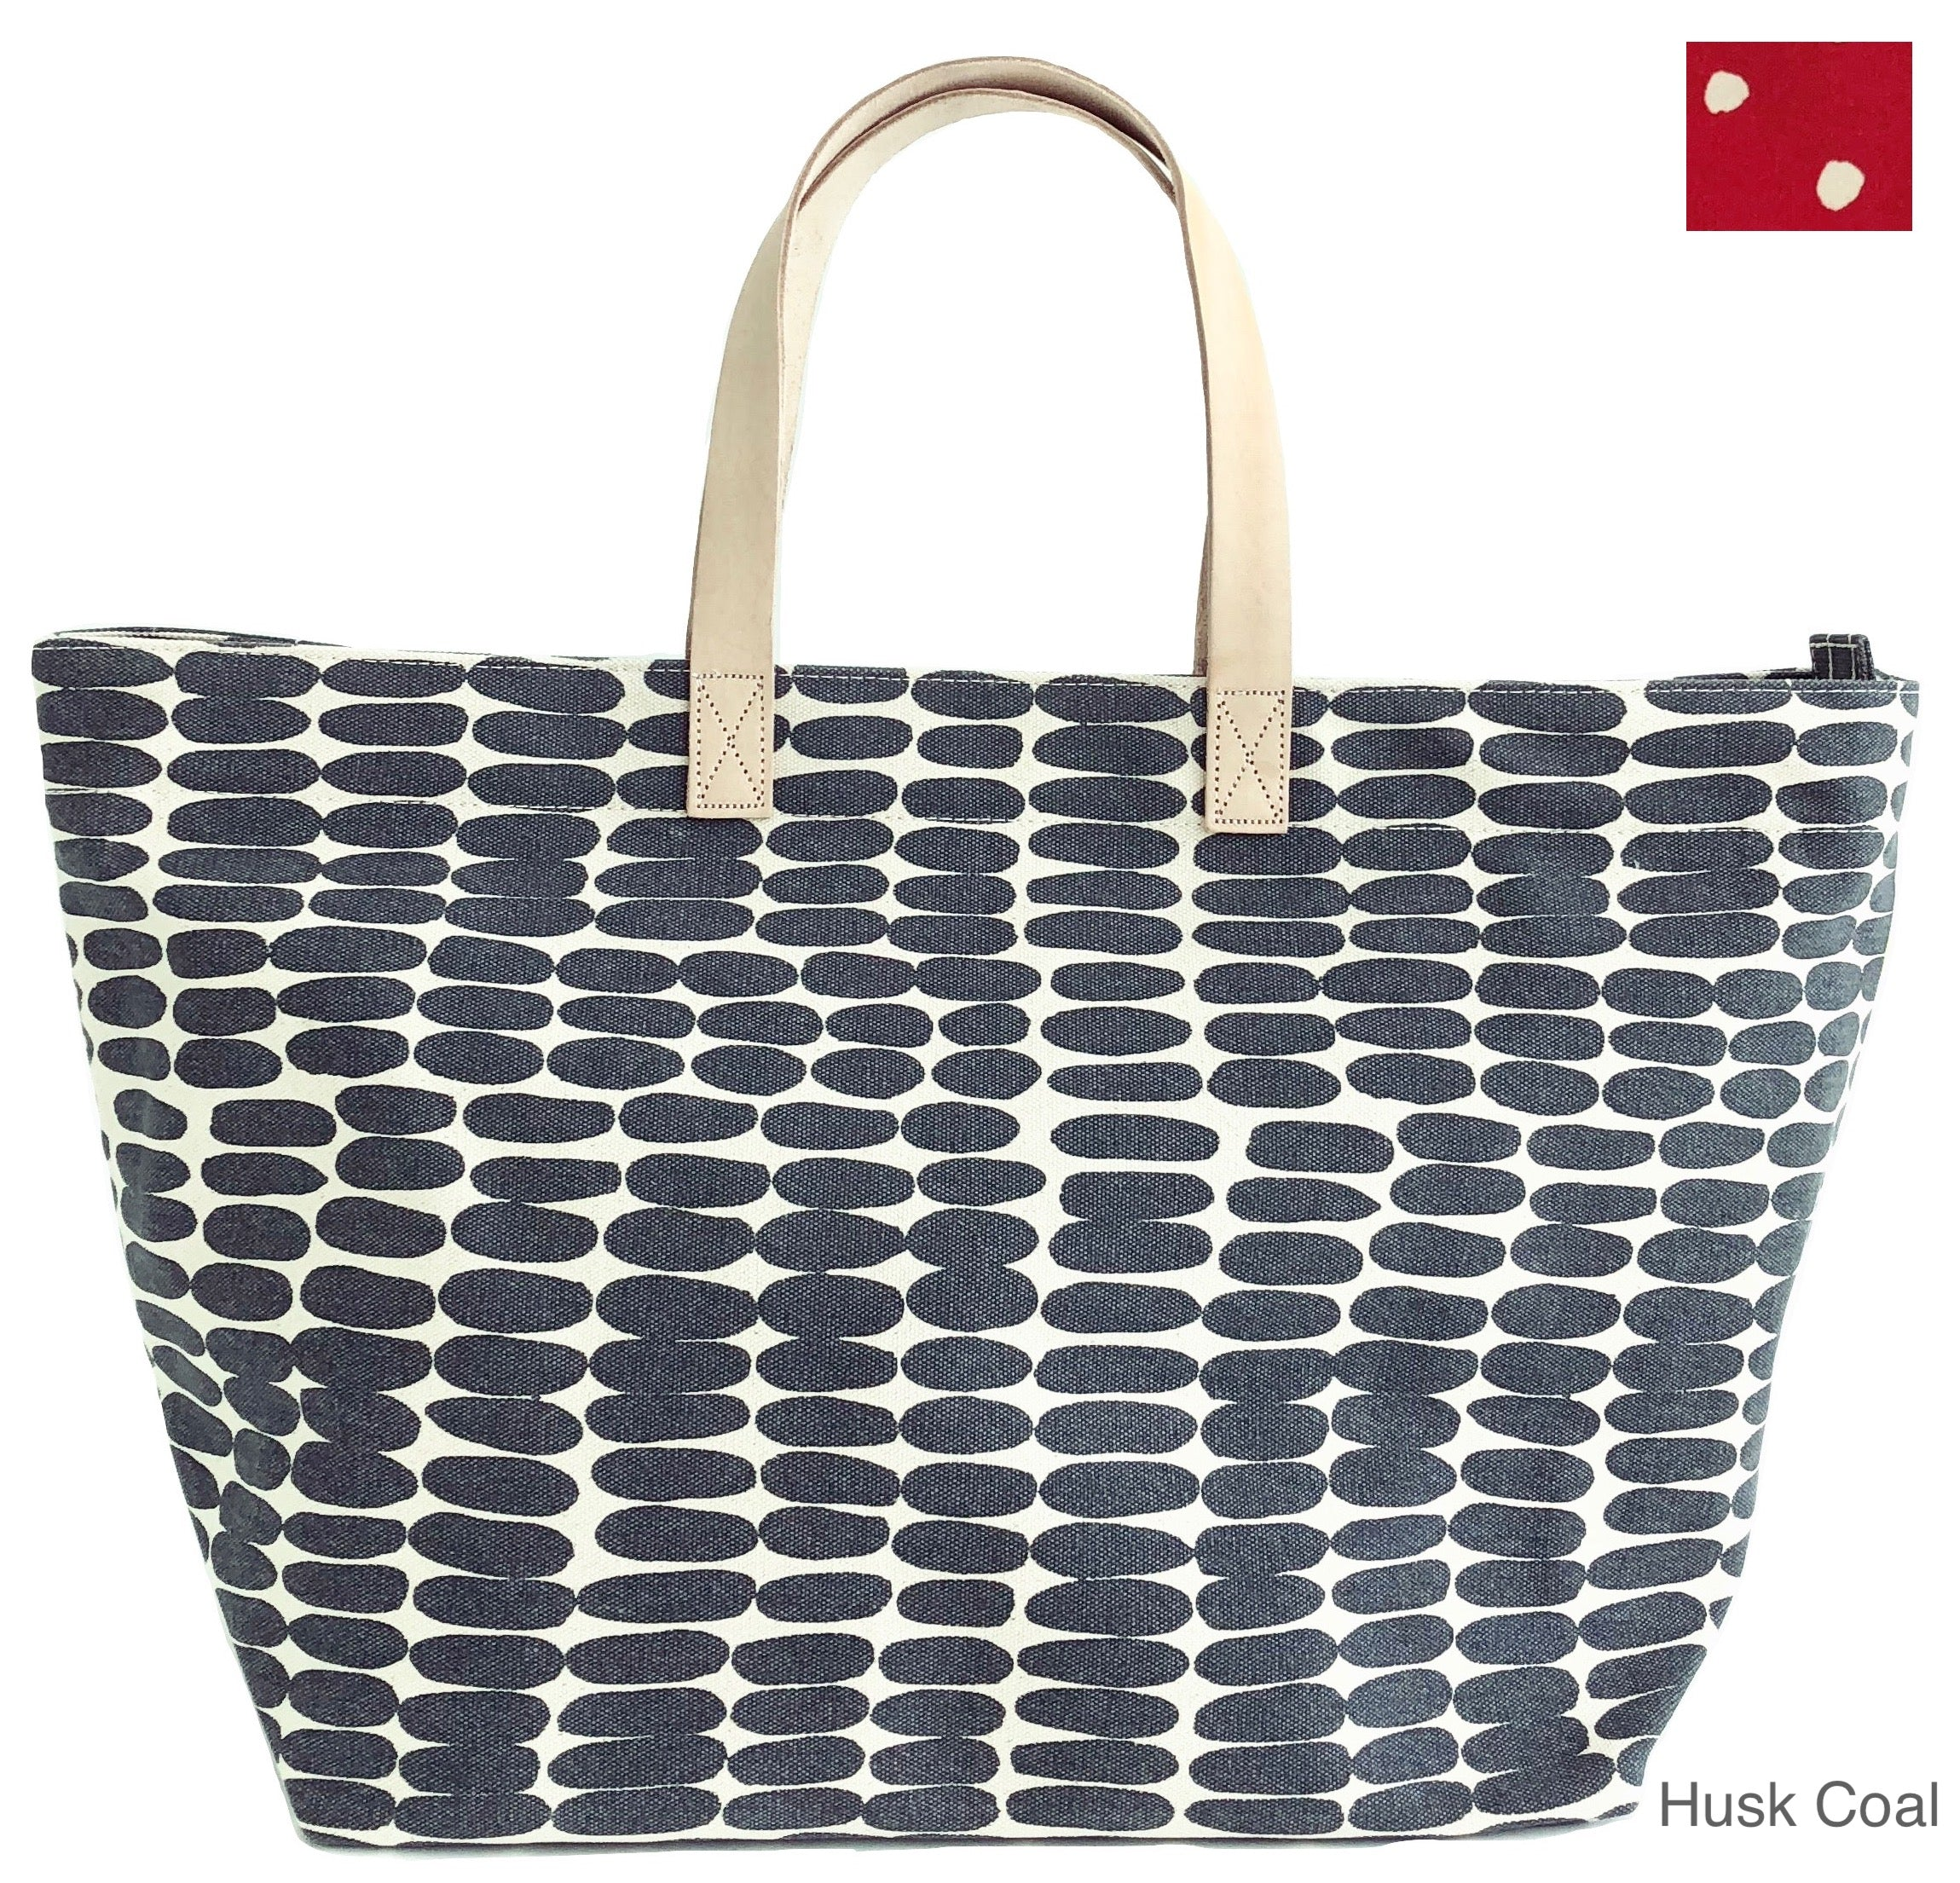 See Design Overnighter Husk Coal zippered tote bag by Donna Gorman